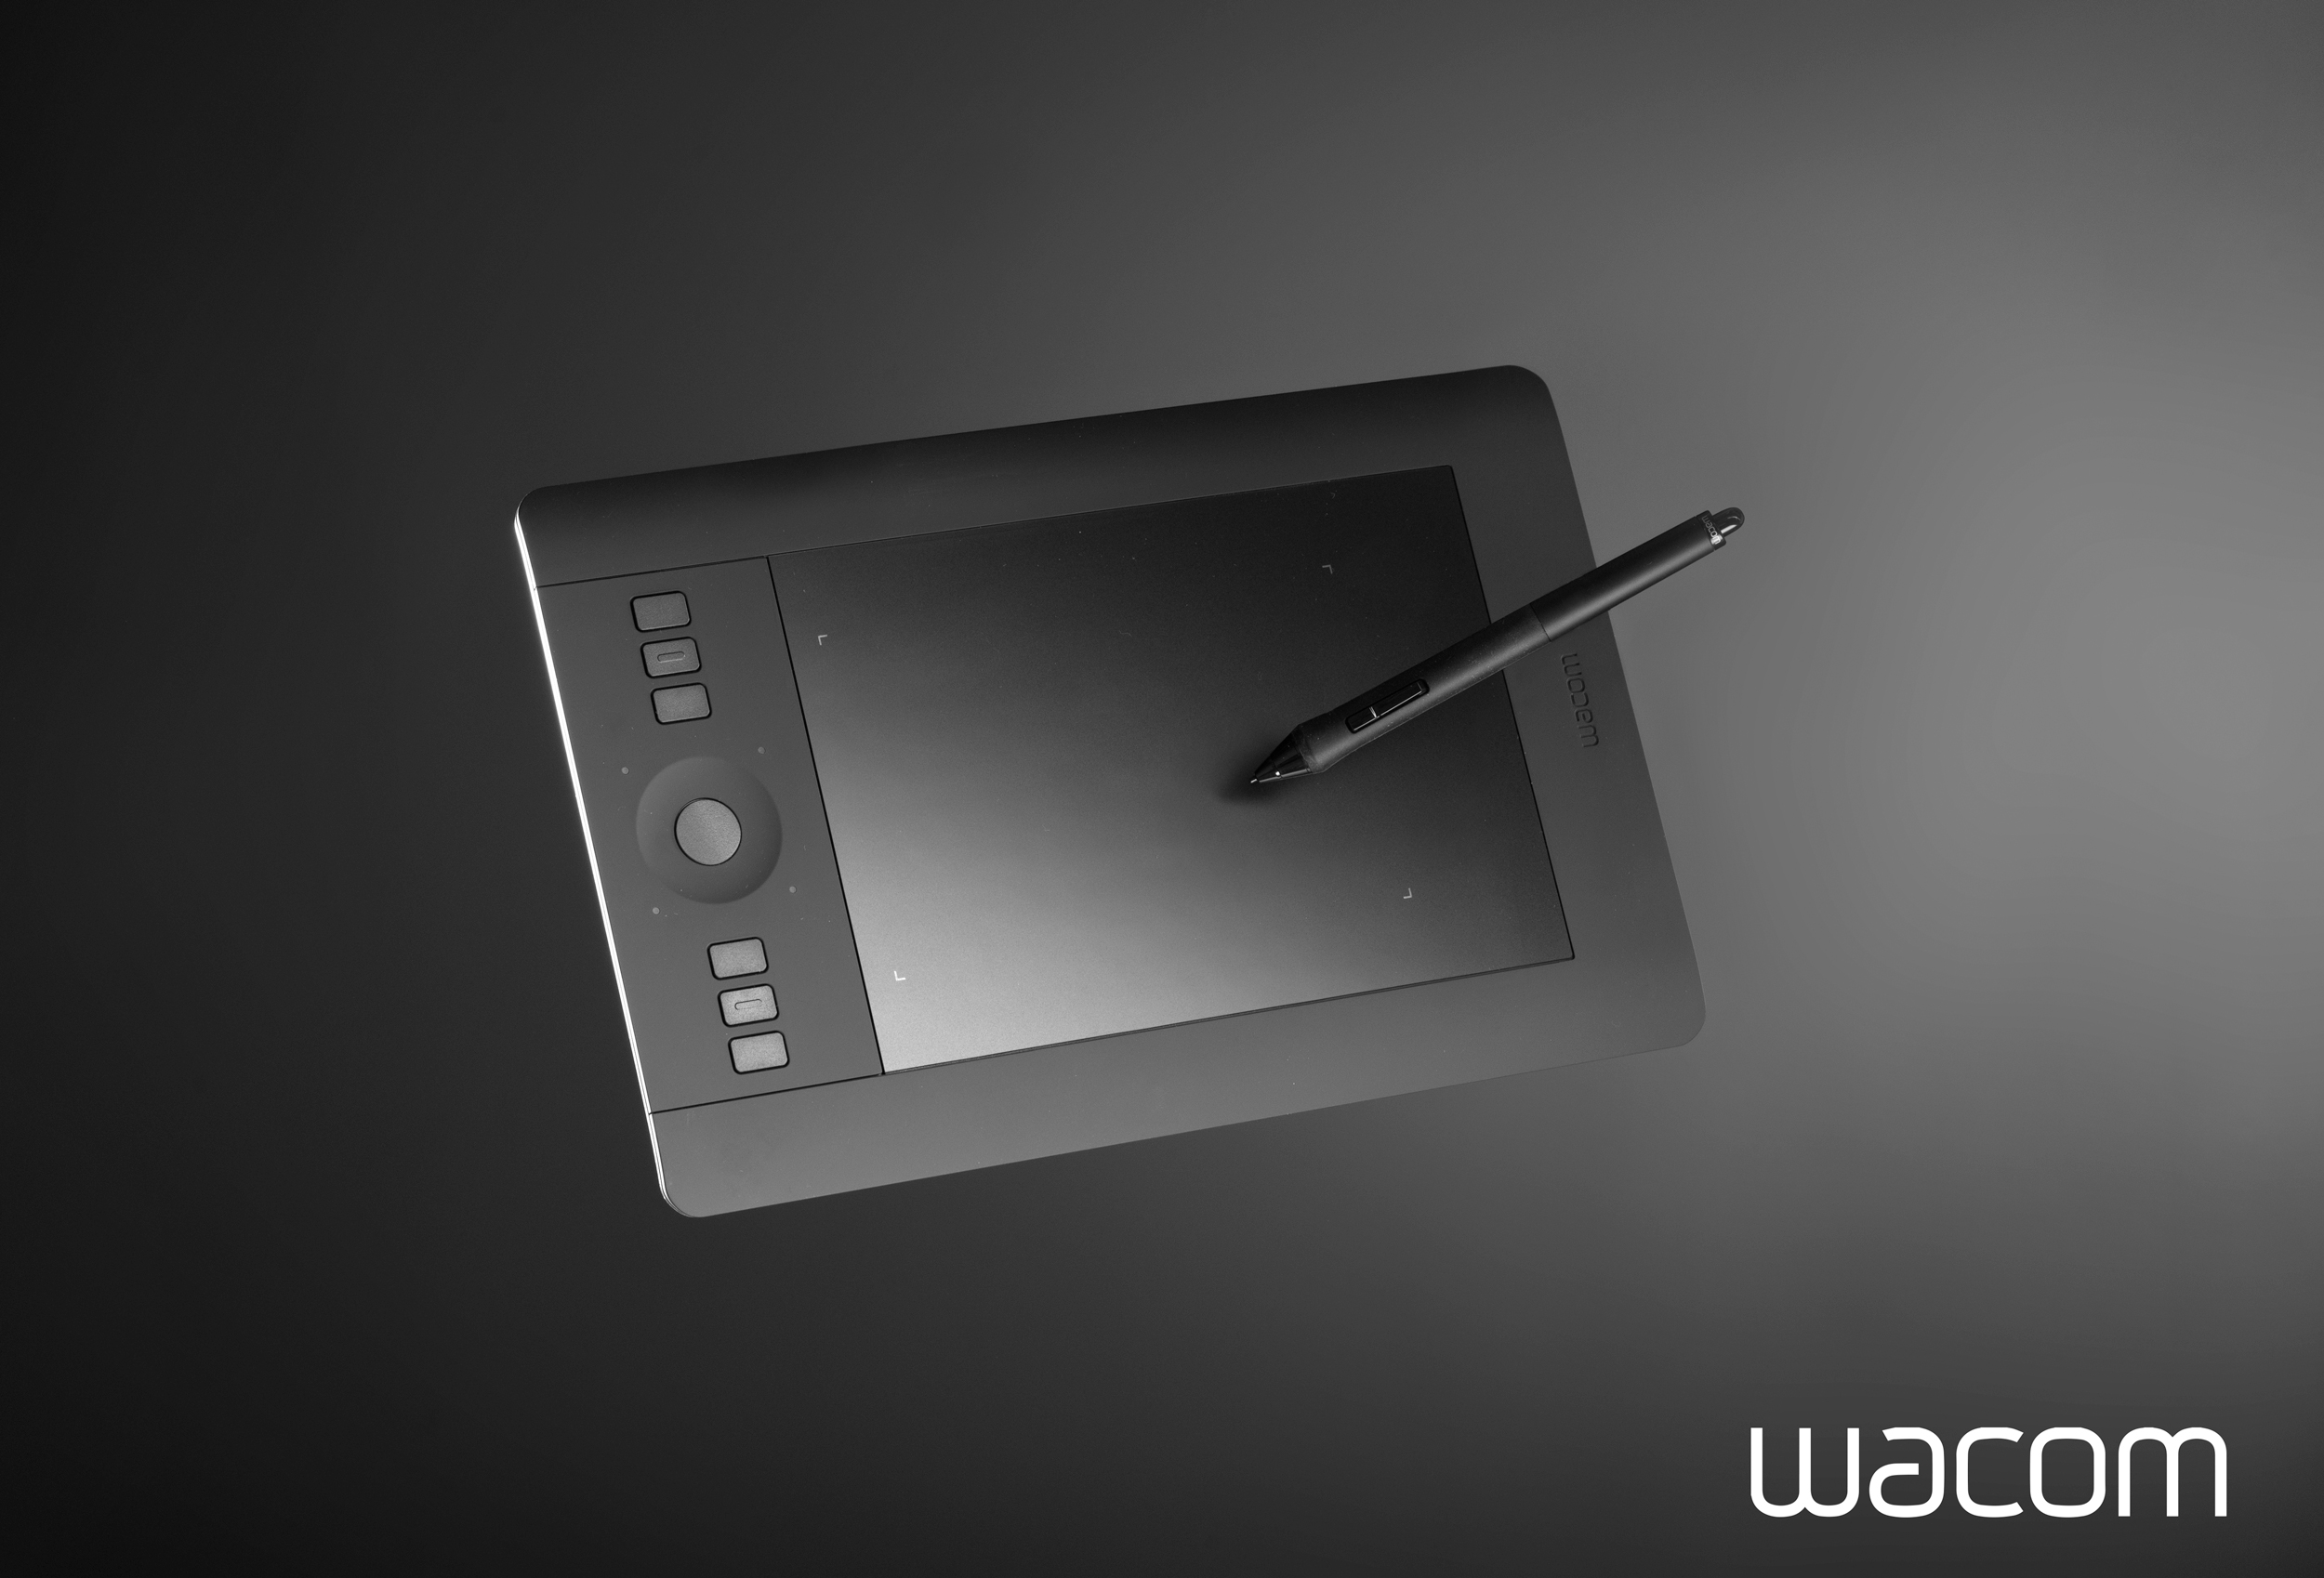 Wacom-tablet.jpg